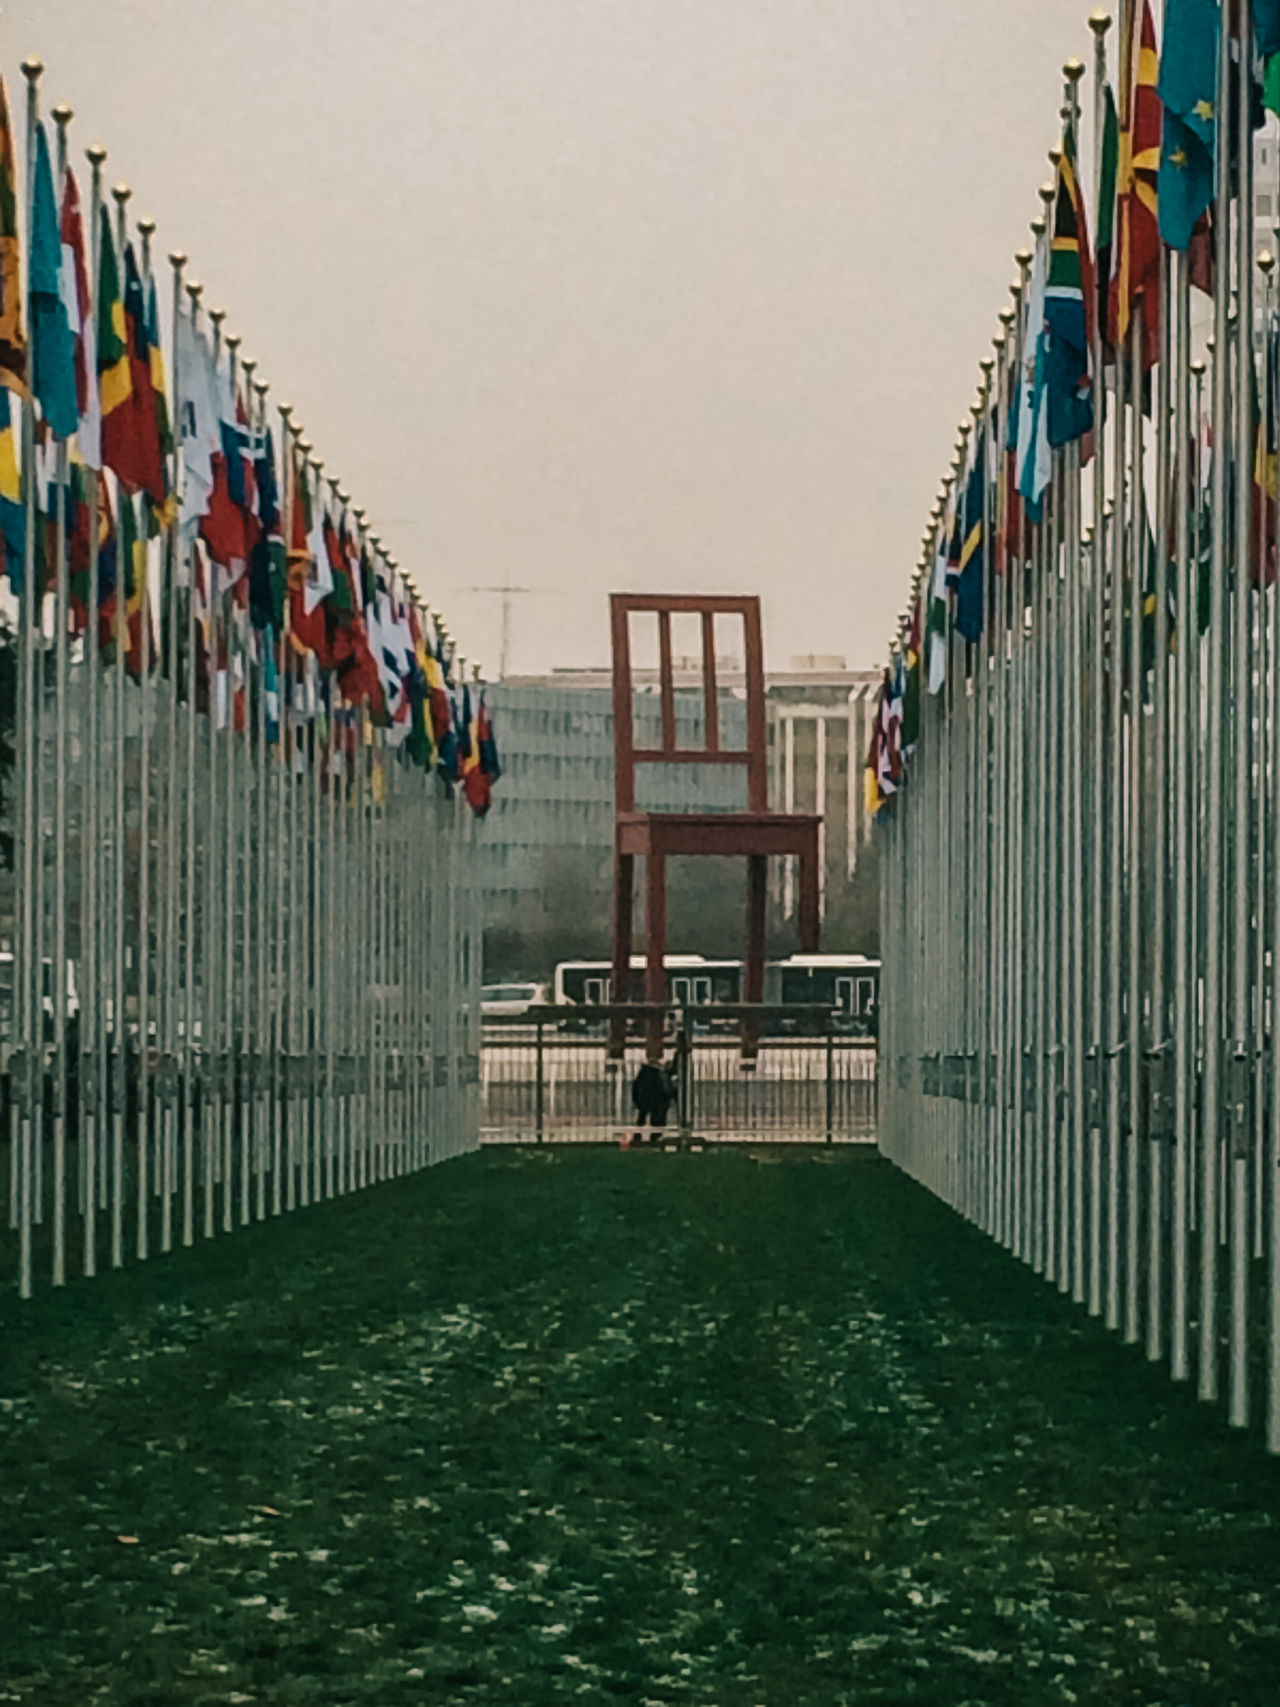 Architecture Chair Day Flag Geneva International Landmines No People Outdoors Sky Symbol Symbolism United Nations Water